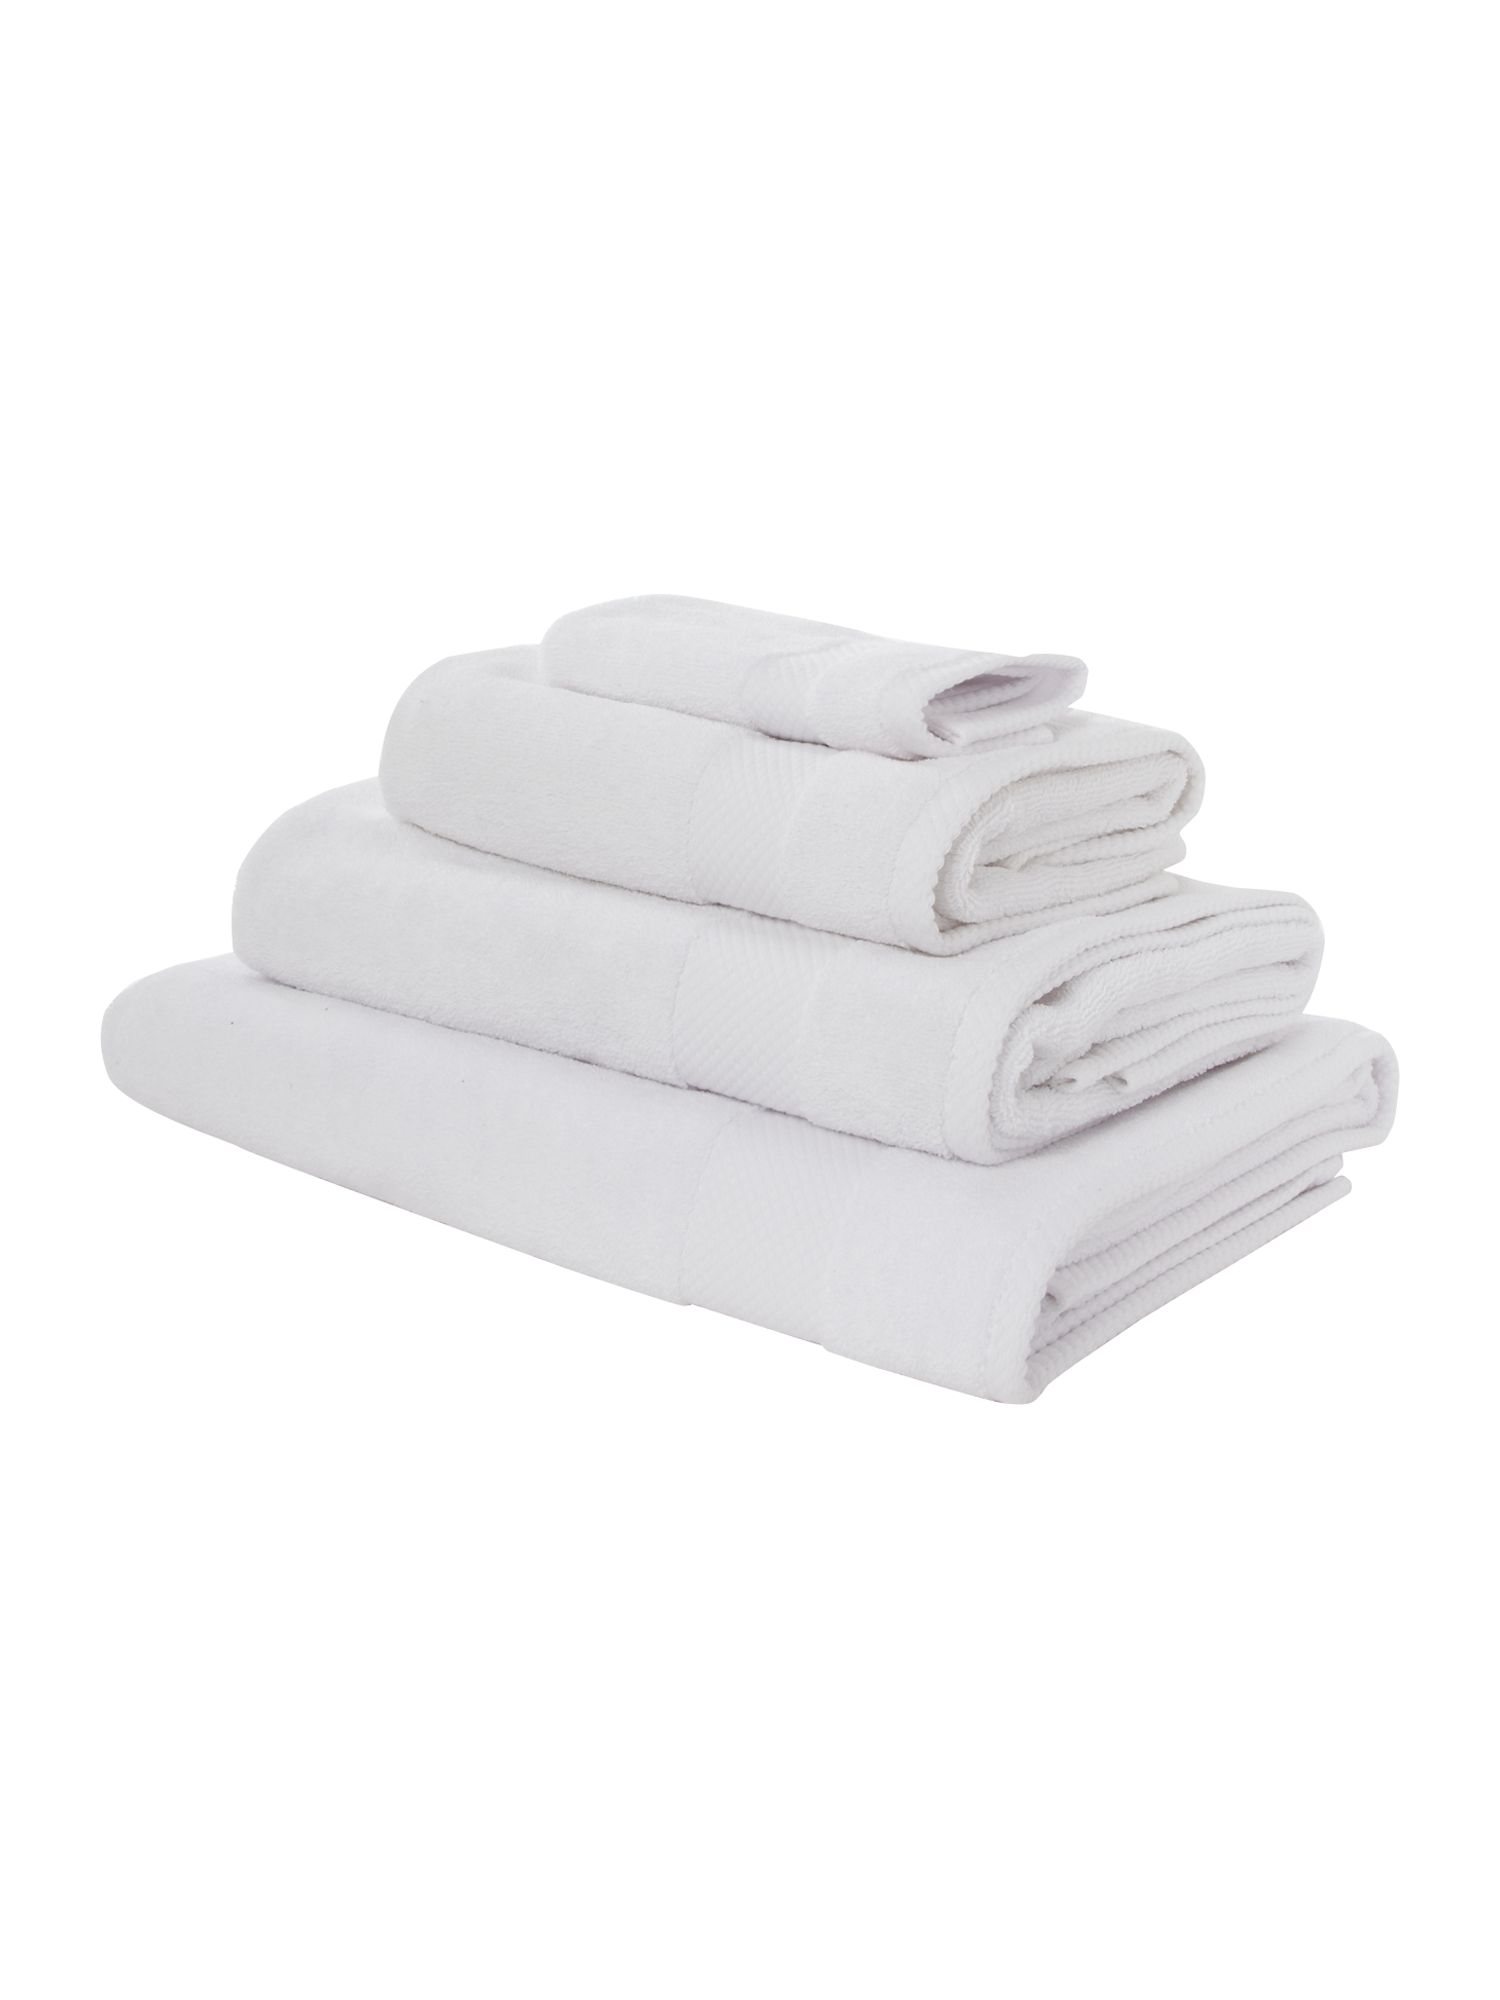 Linea Egyptian cotton bath sheet white